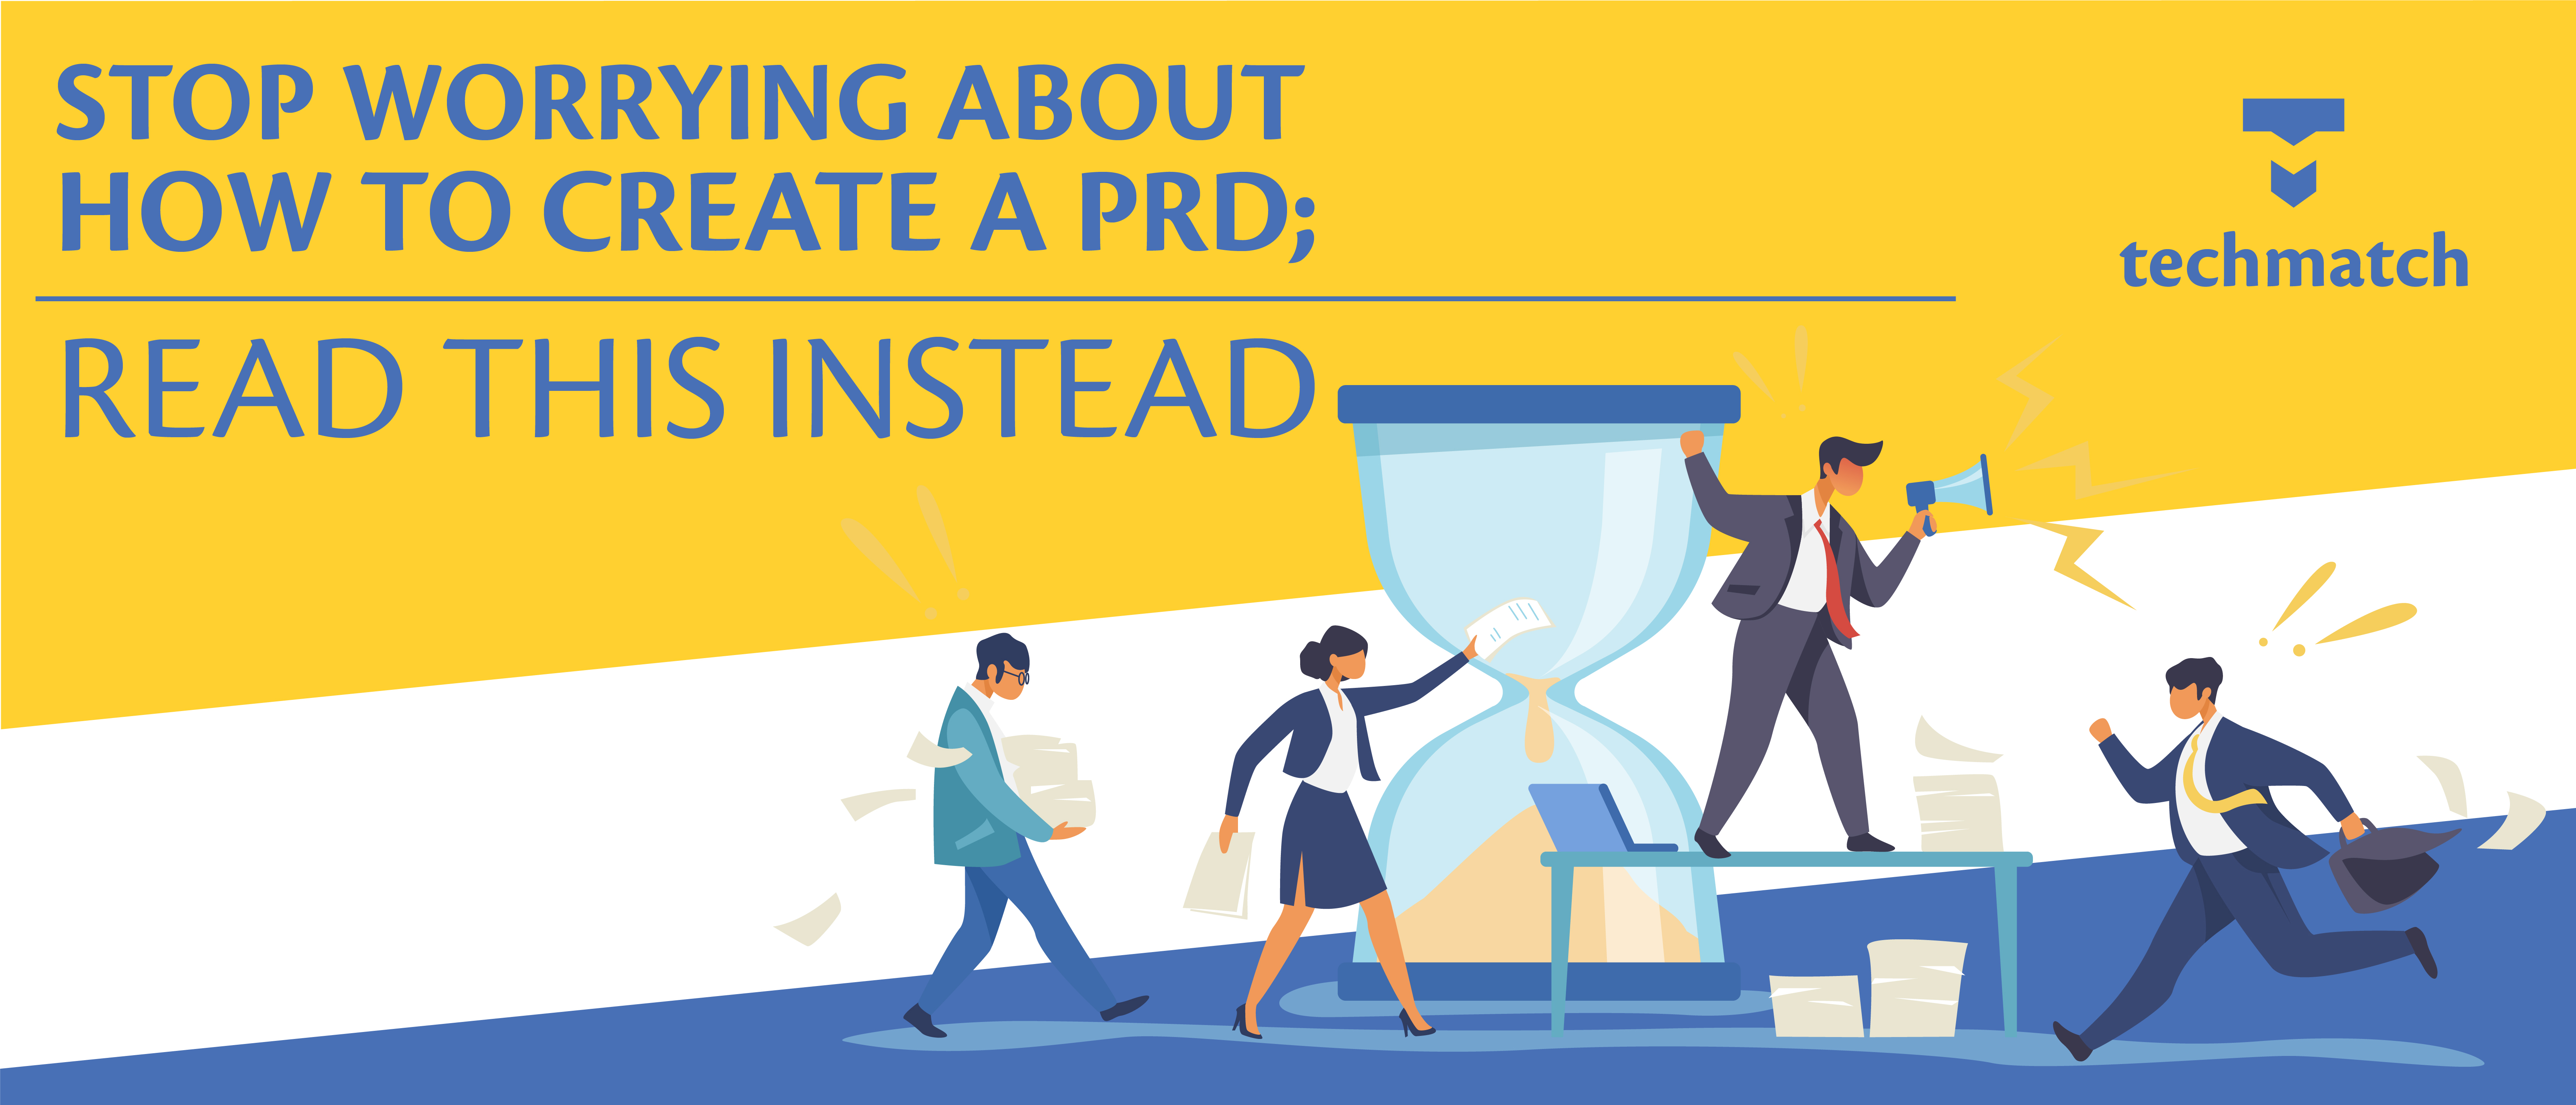 Stop Worrying About How To Create A PRD; Read This Instead